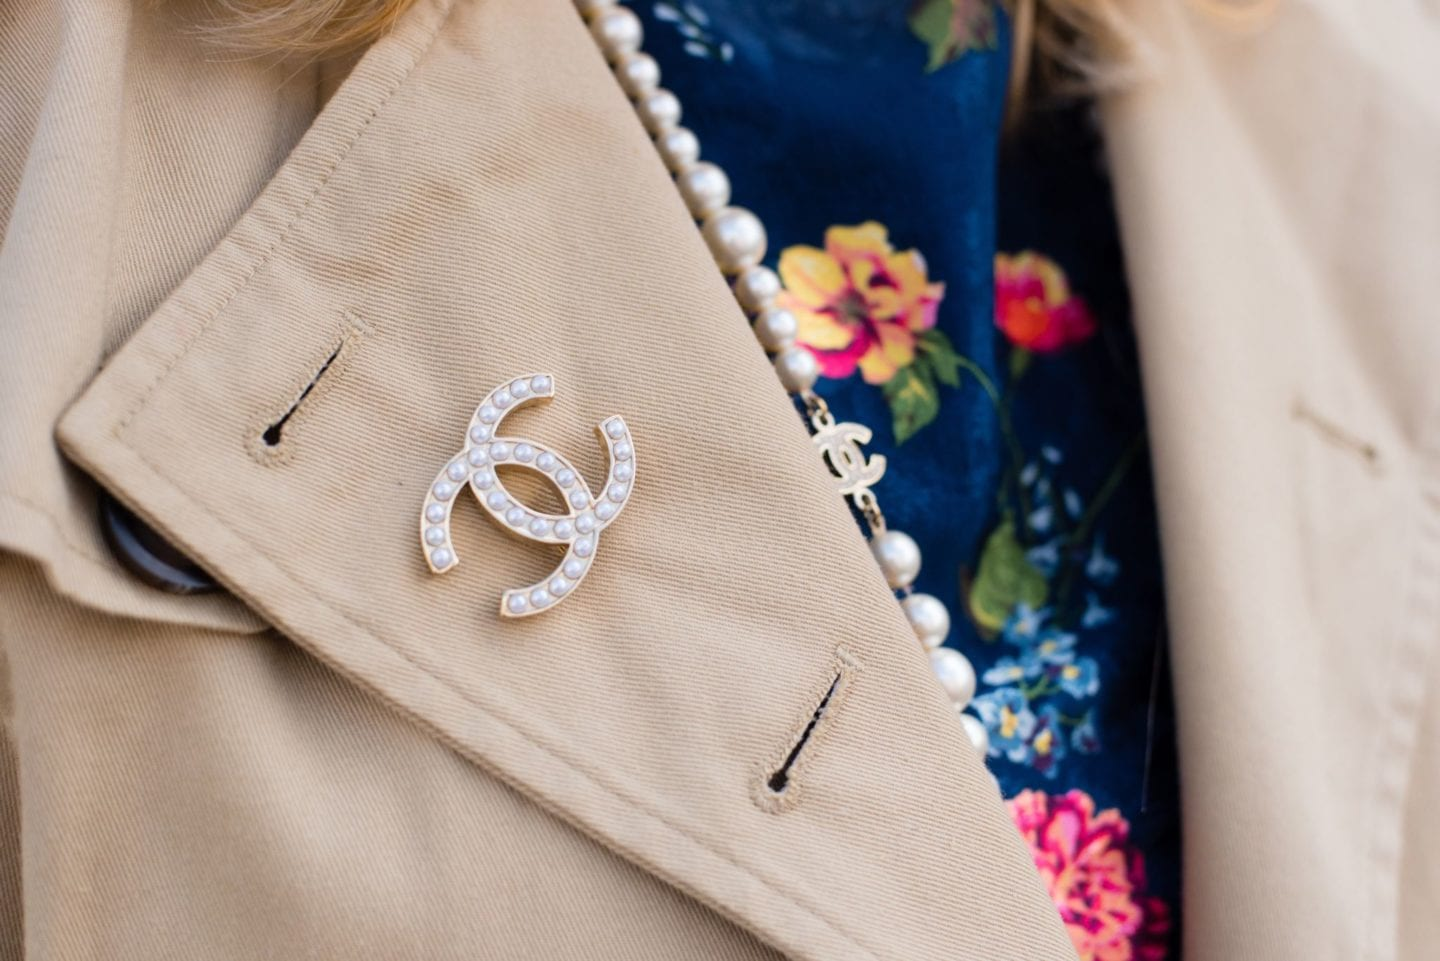 chanel classic pearl brooch disscontinued